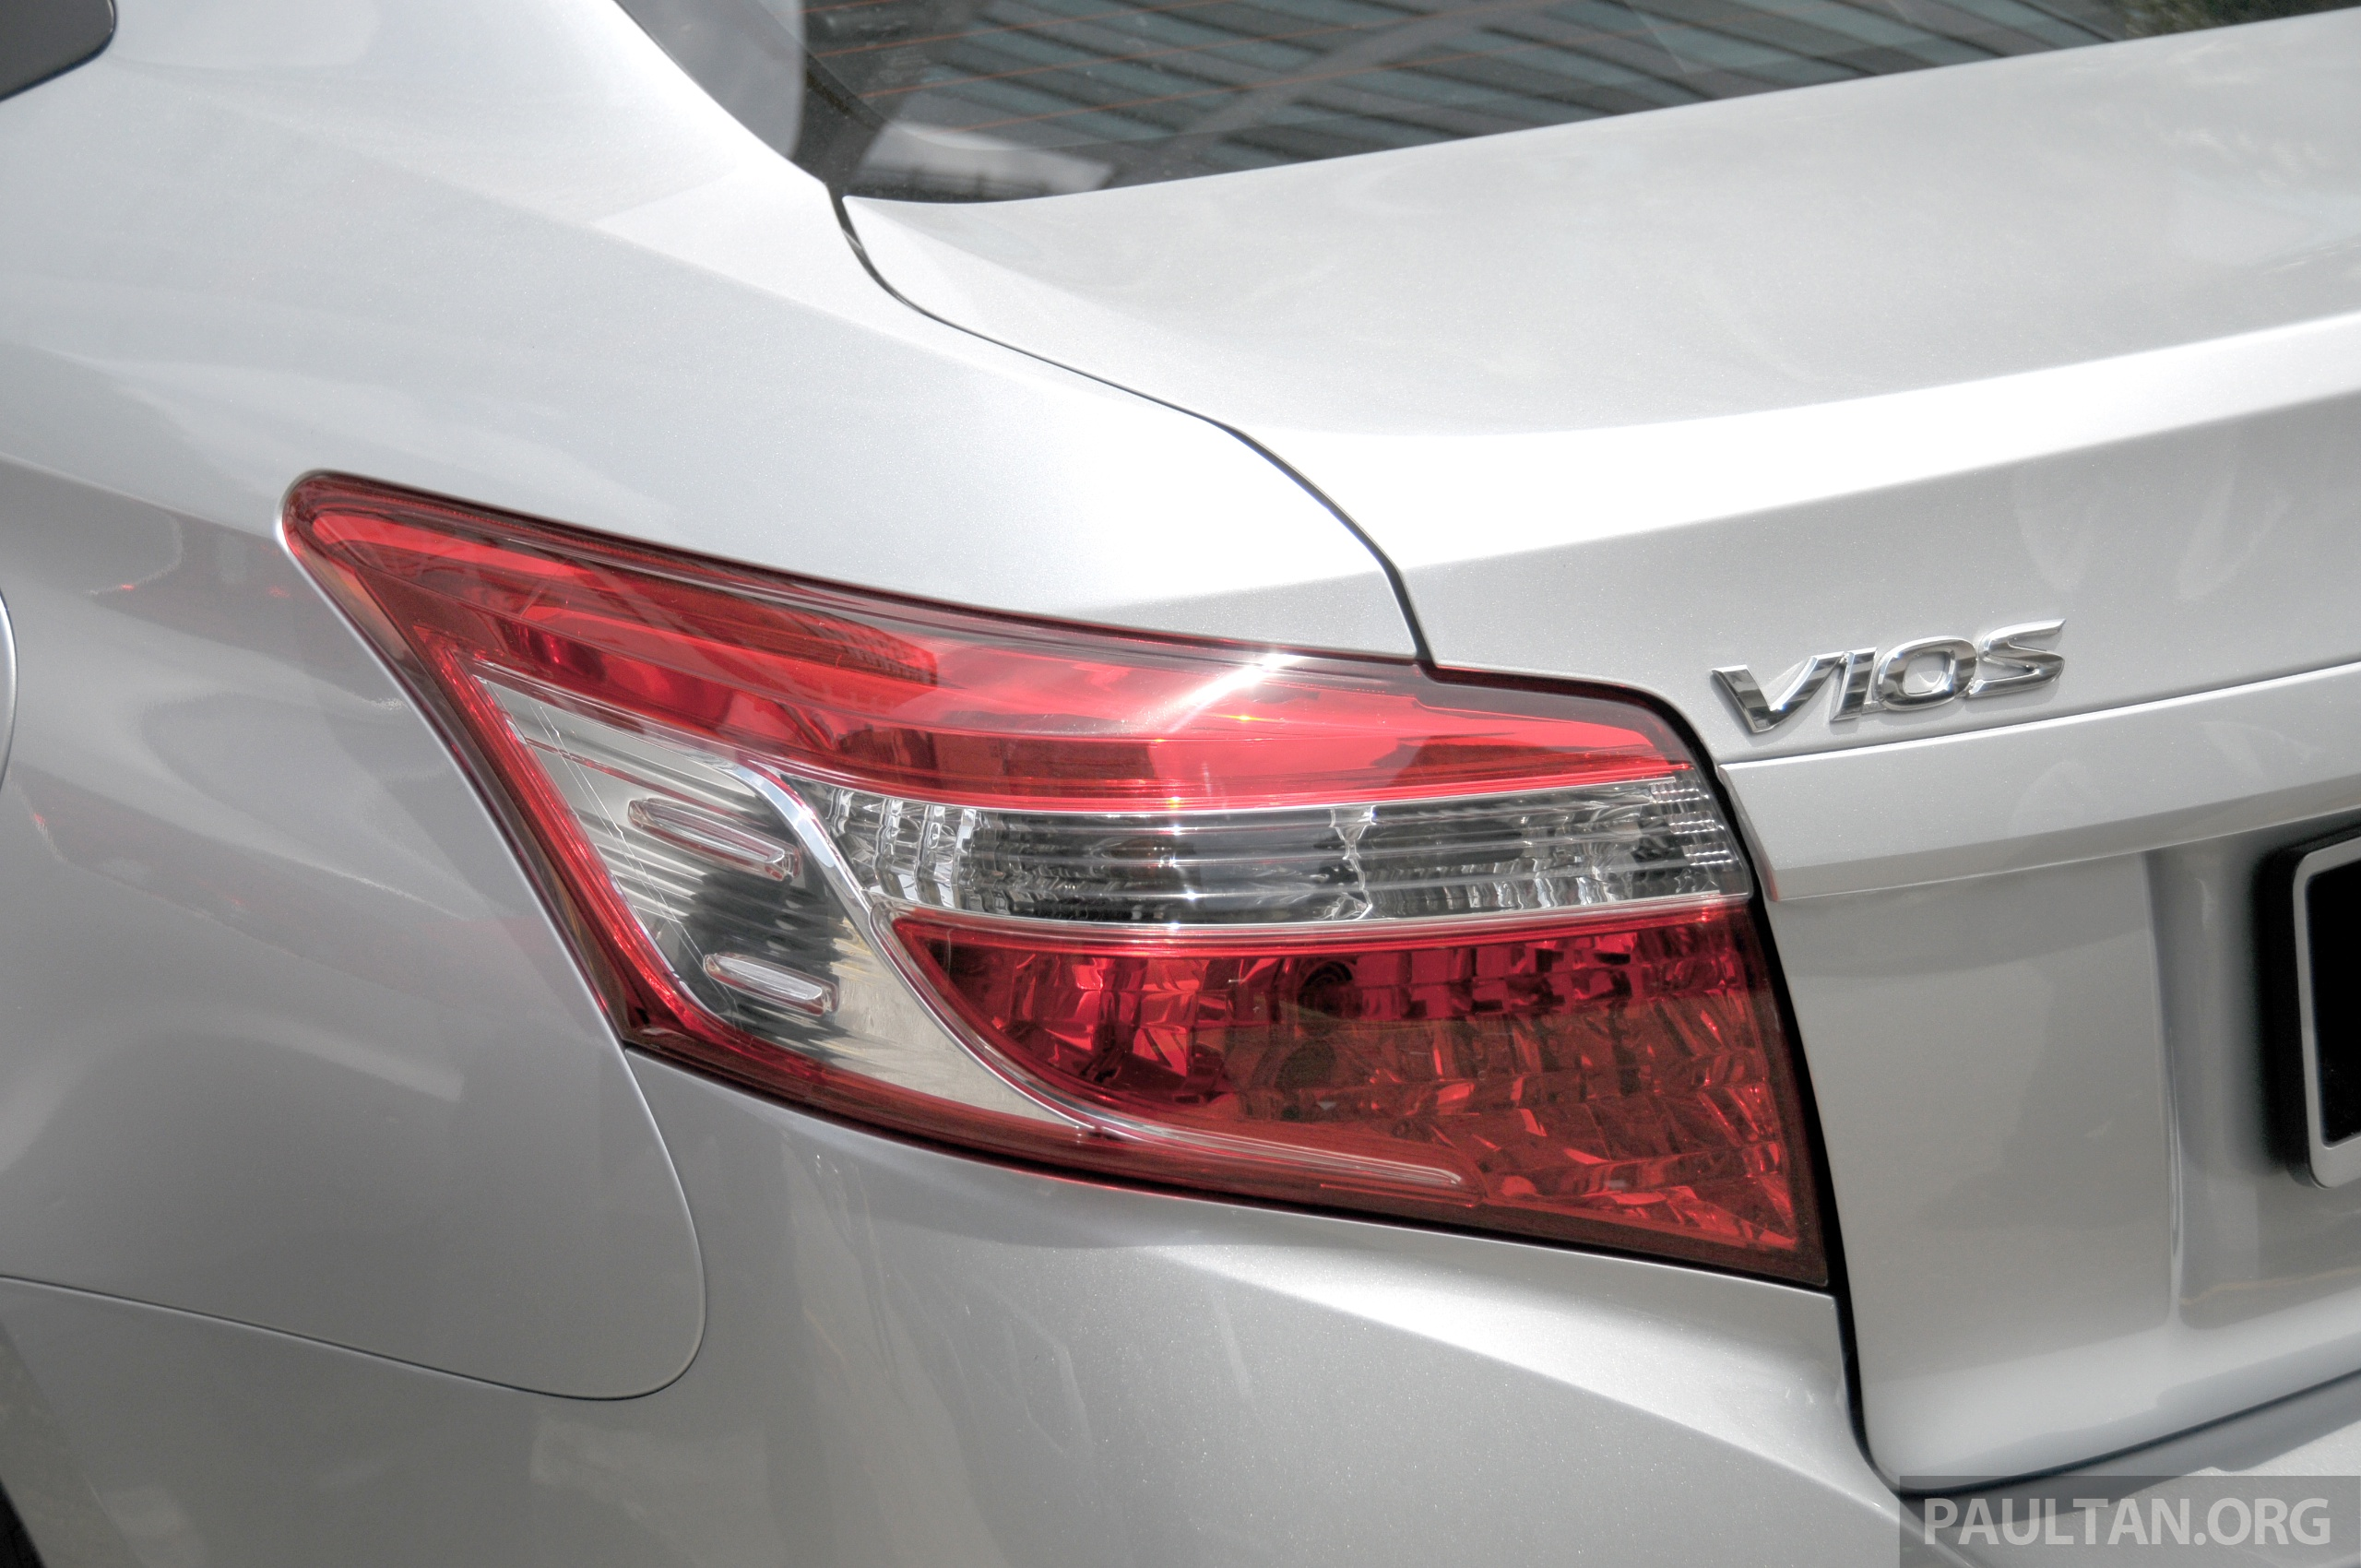 Video Title: The New Toyota Vios 2013 Malaysia - YouTube